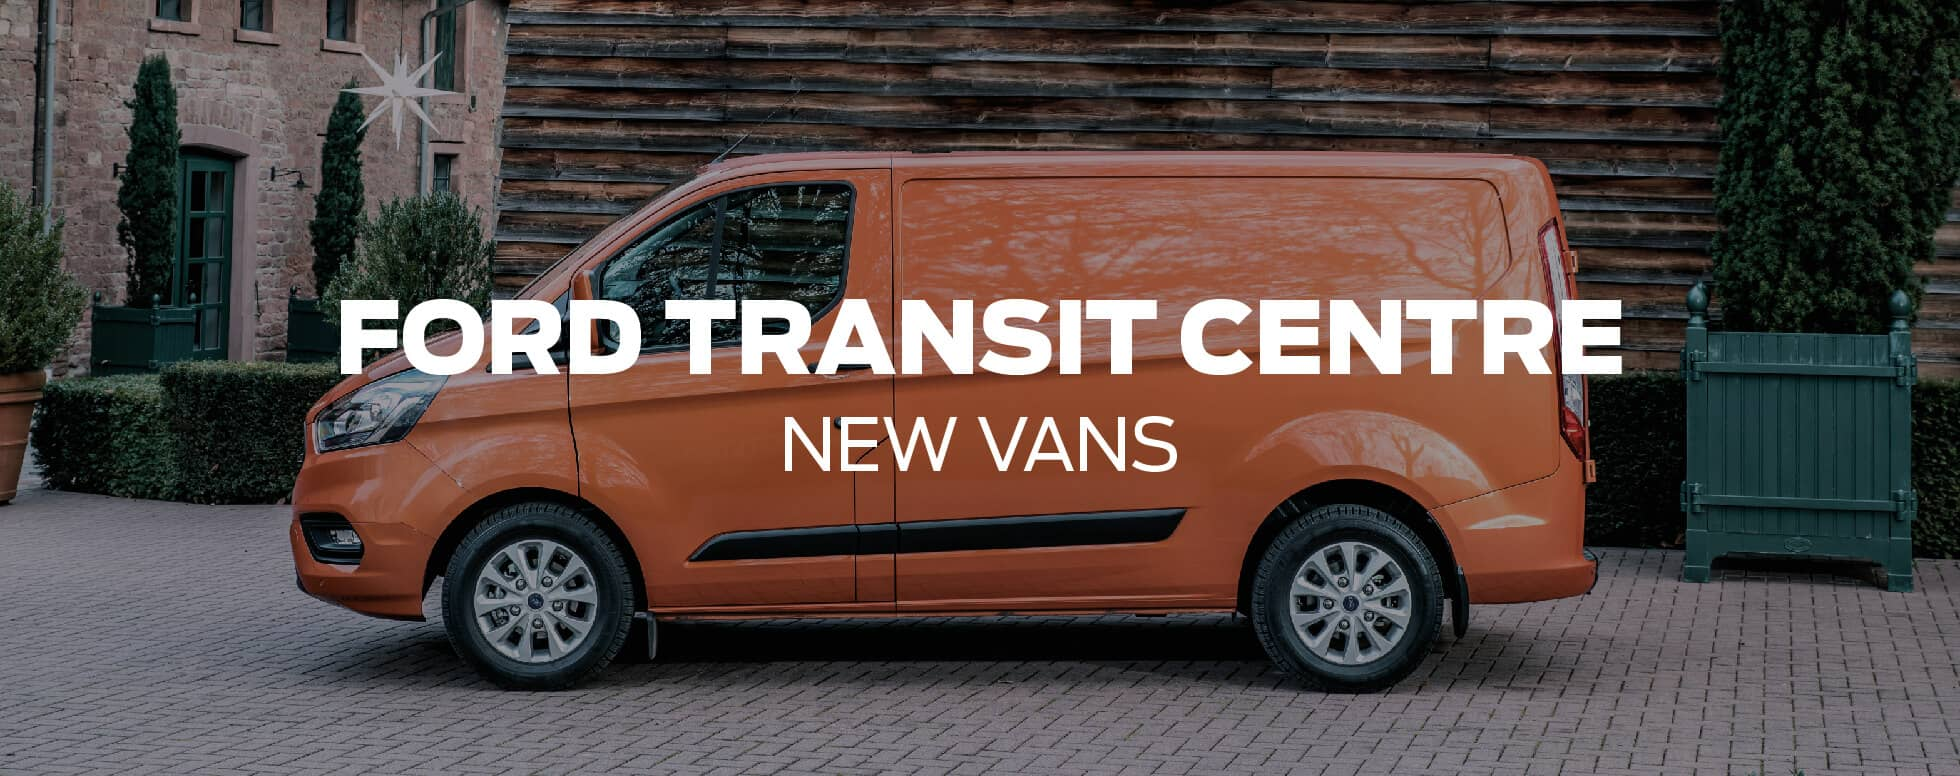 New Ford Vans - Ford Transit Centre